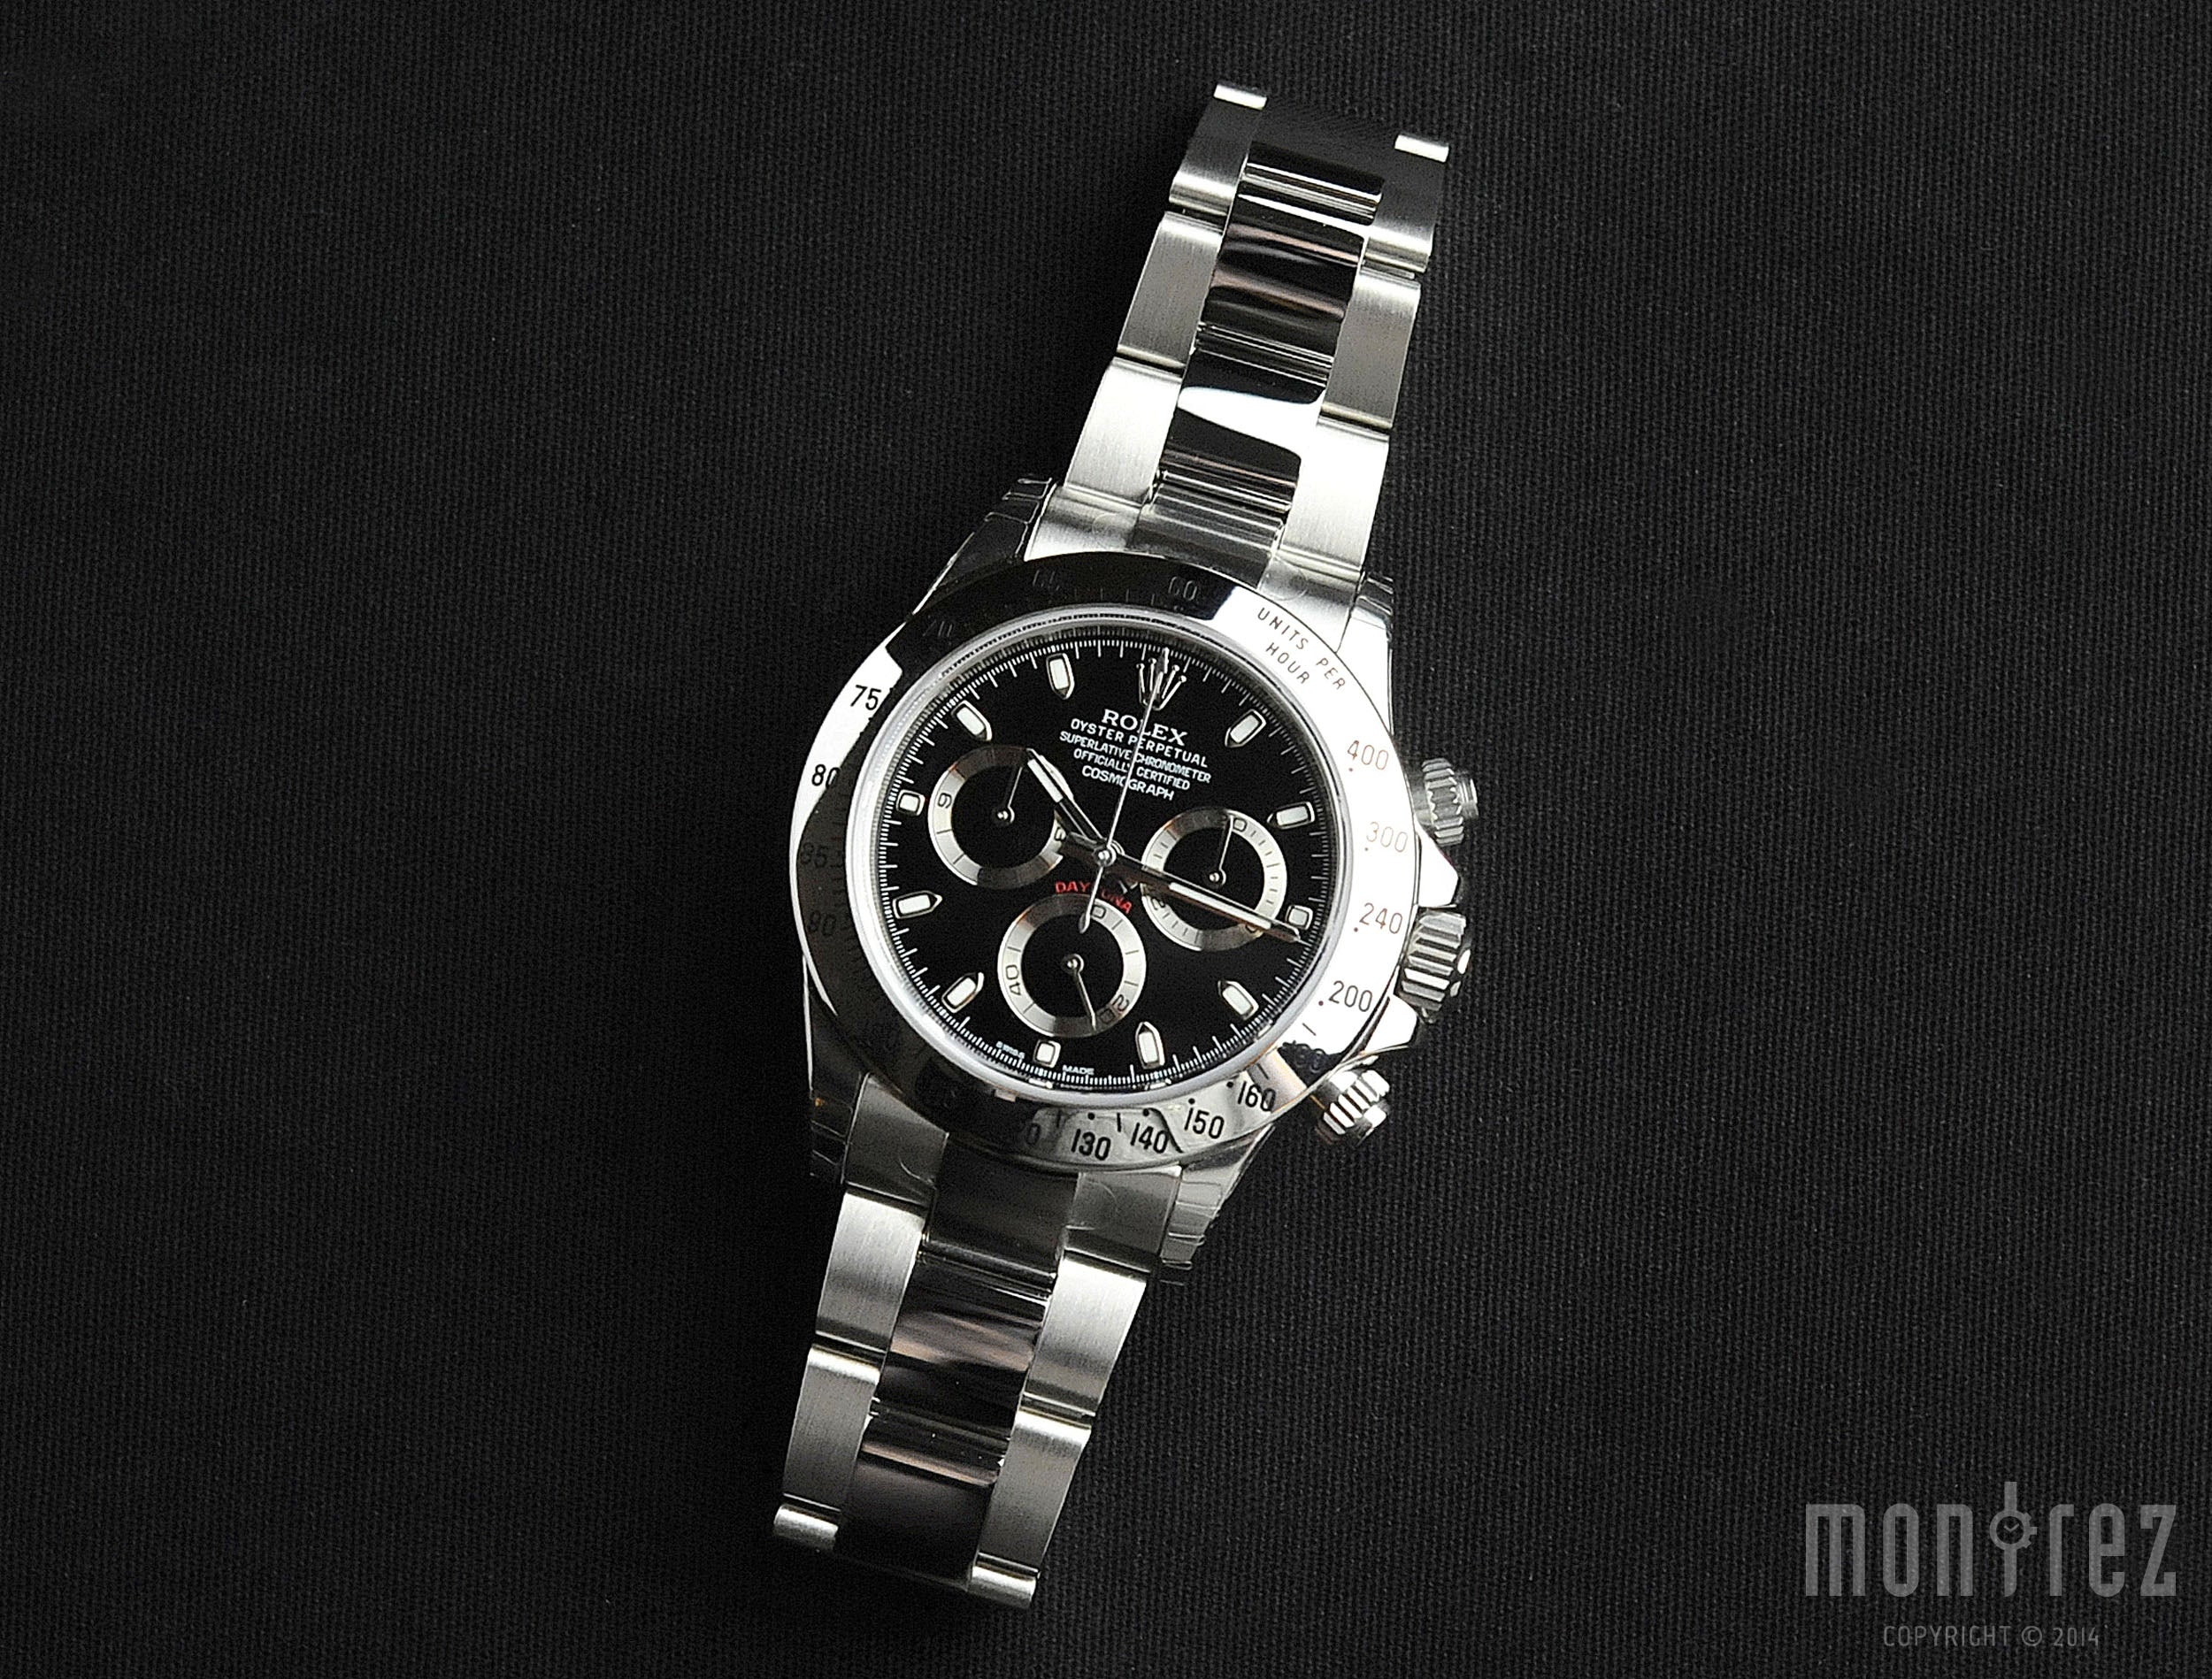 Rolex Cosmograph Daytona 40mm 116520 Black Dial (Out of Production)